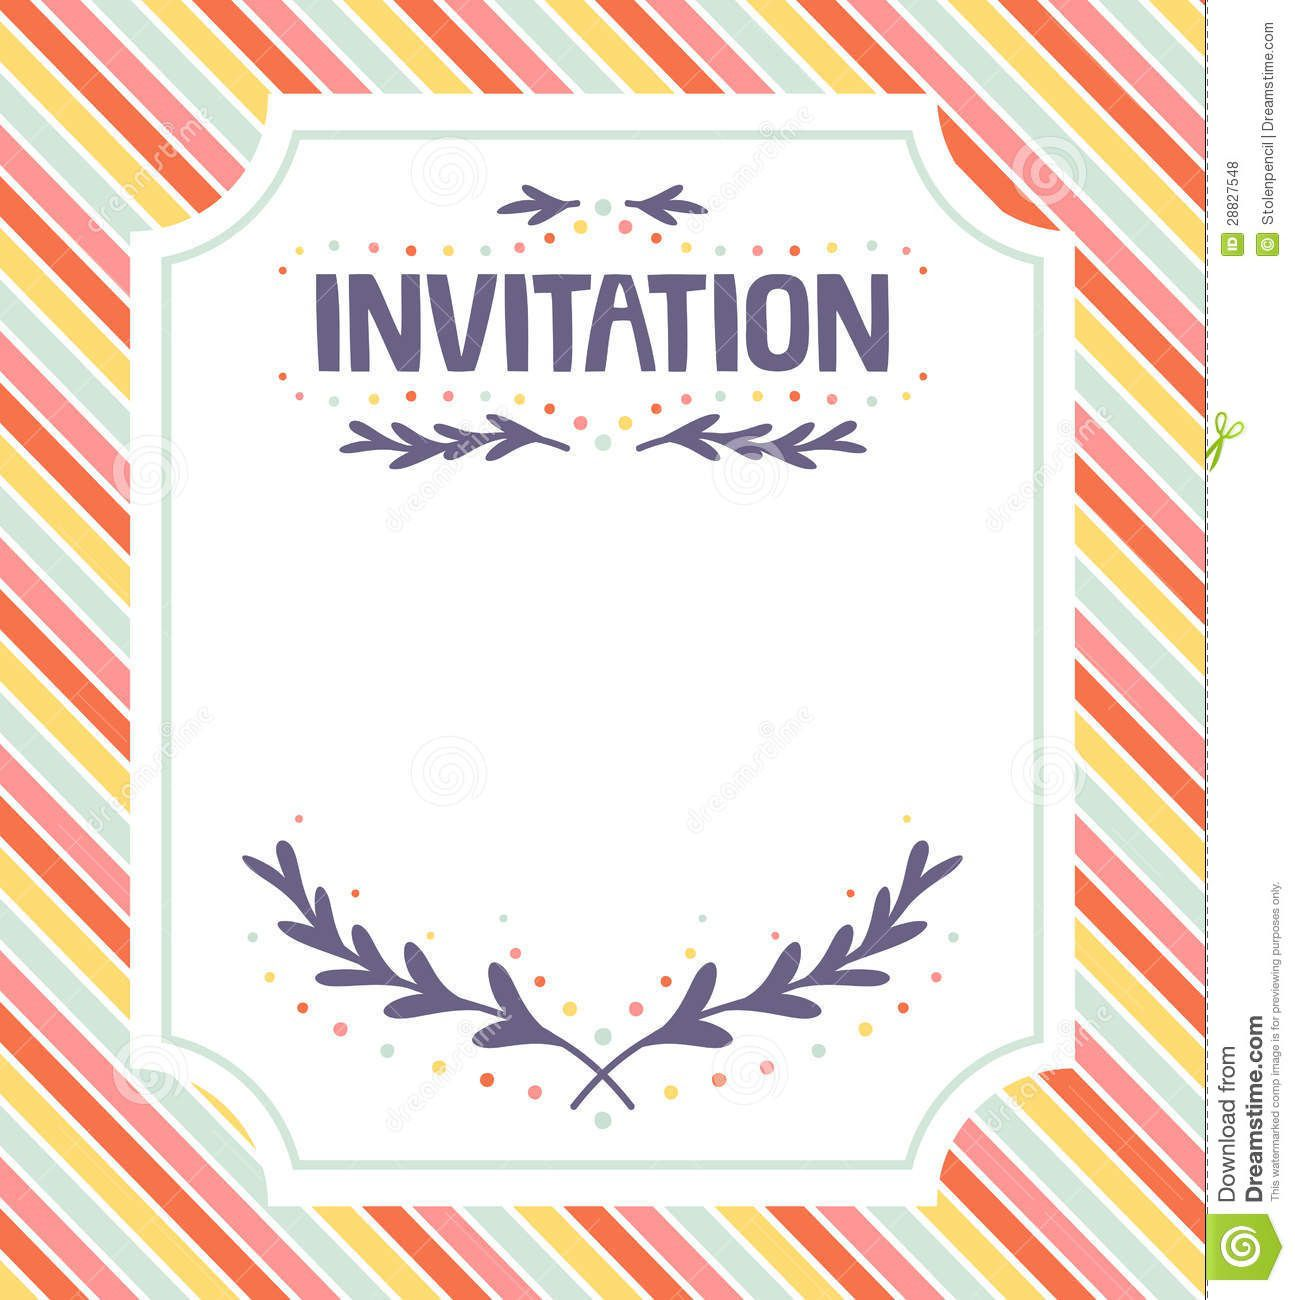 Free Downloadable Invitation Templates Addictionary